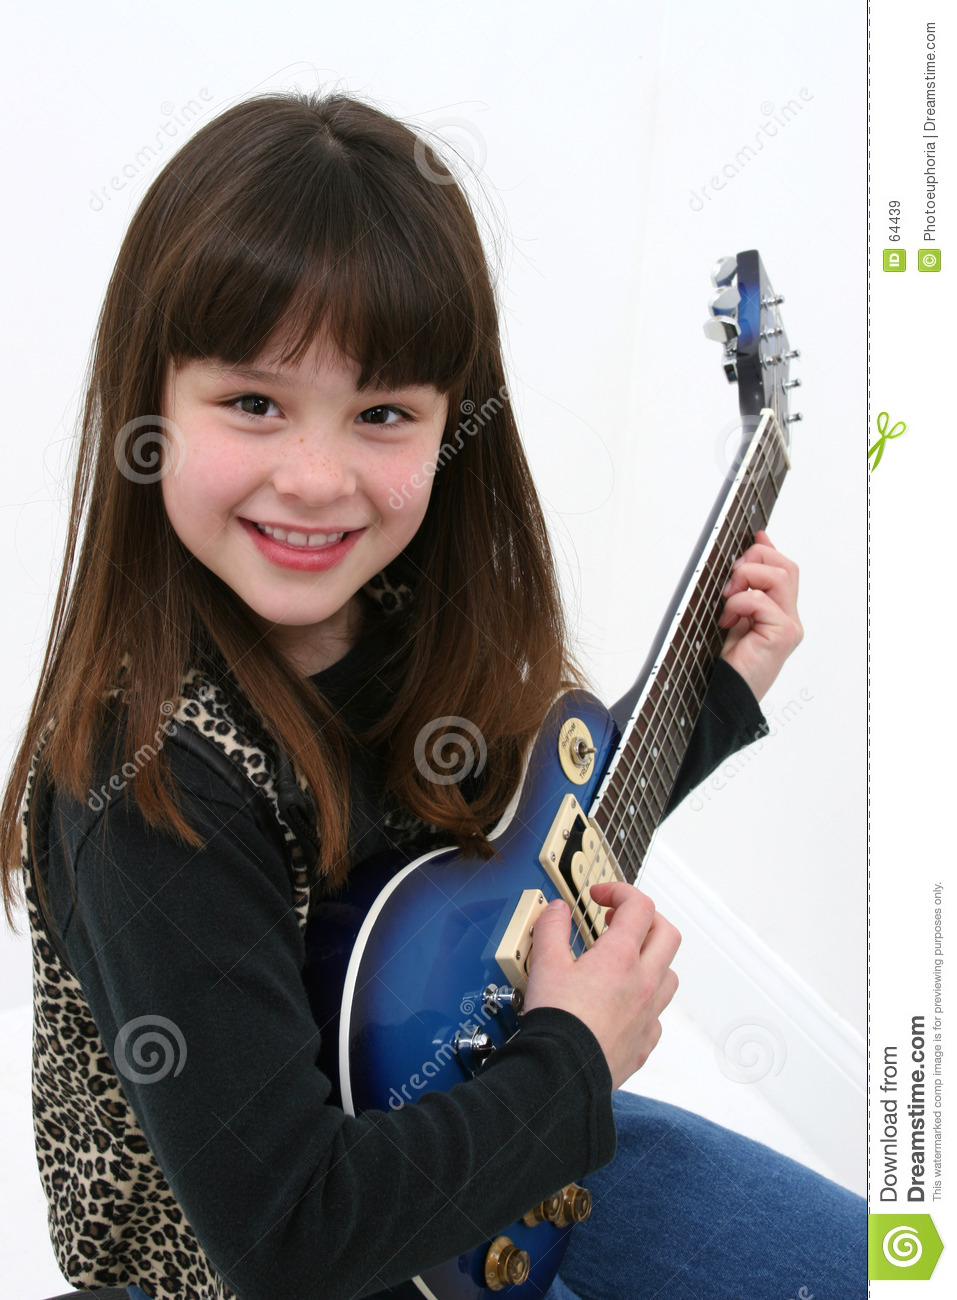 girl with guitar royalty free stock images image 64439. Black Bedroom Furniture Sets. Home Design Ideas